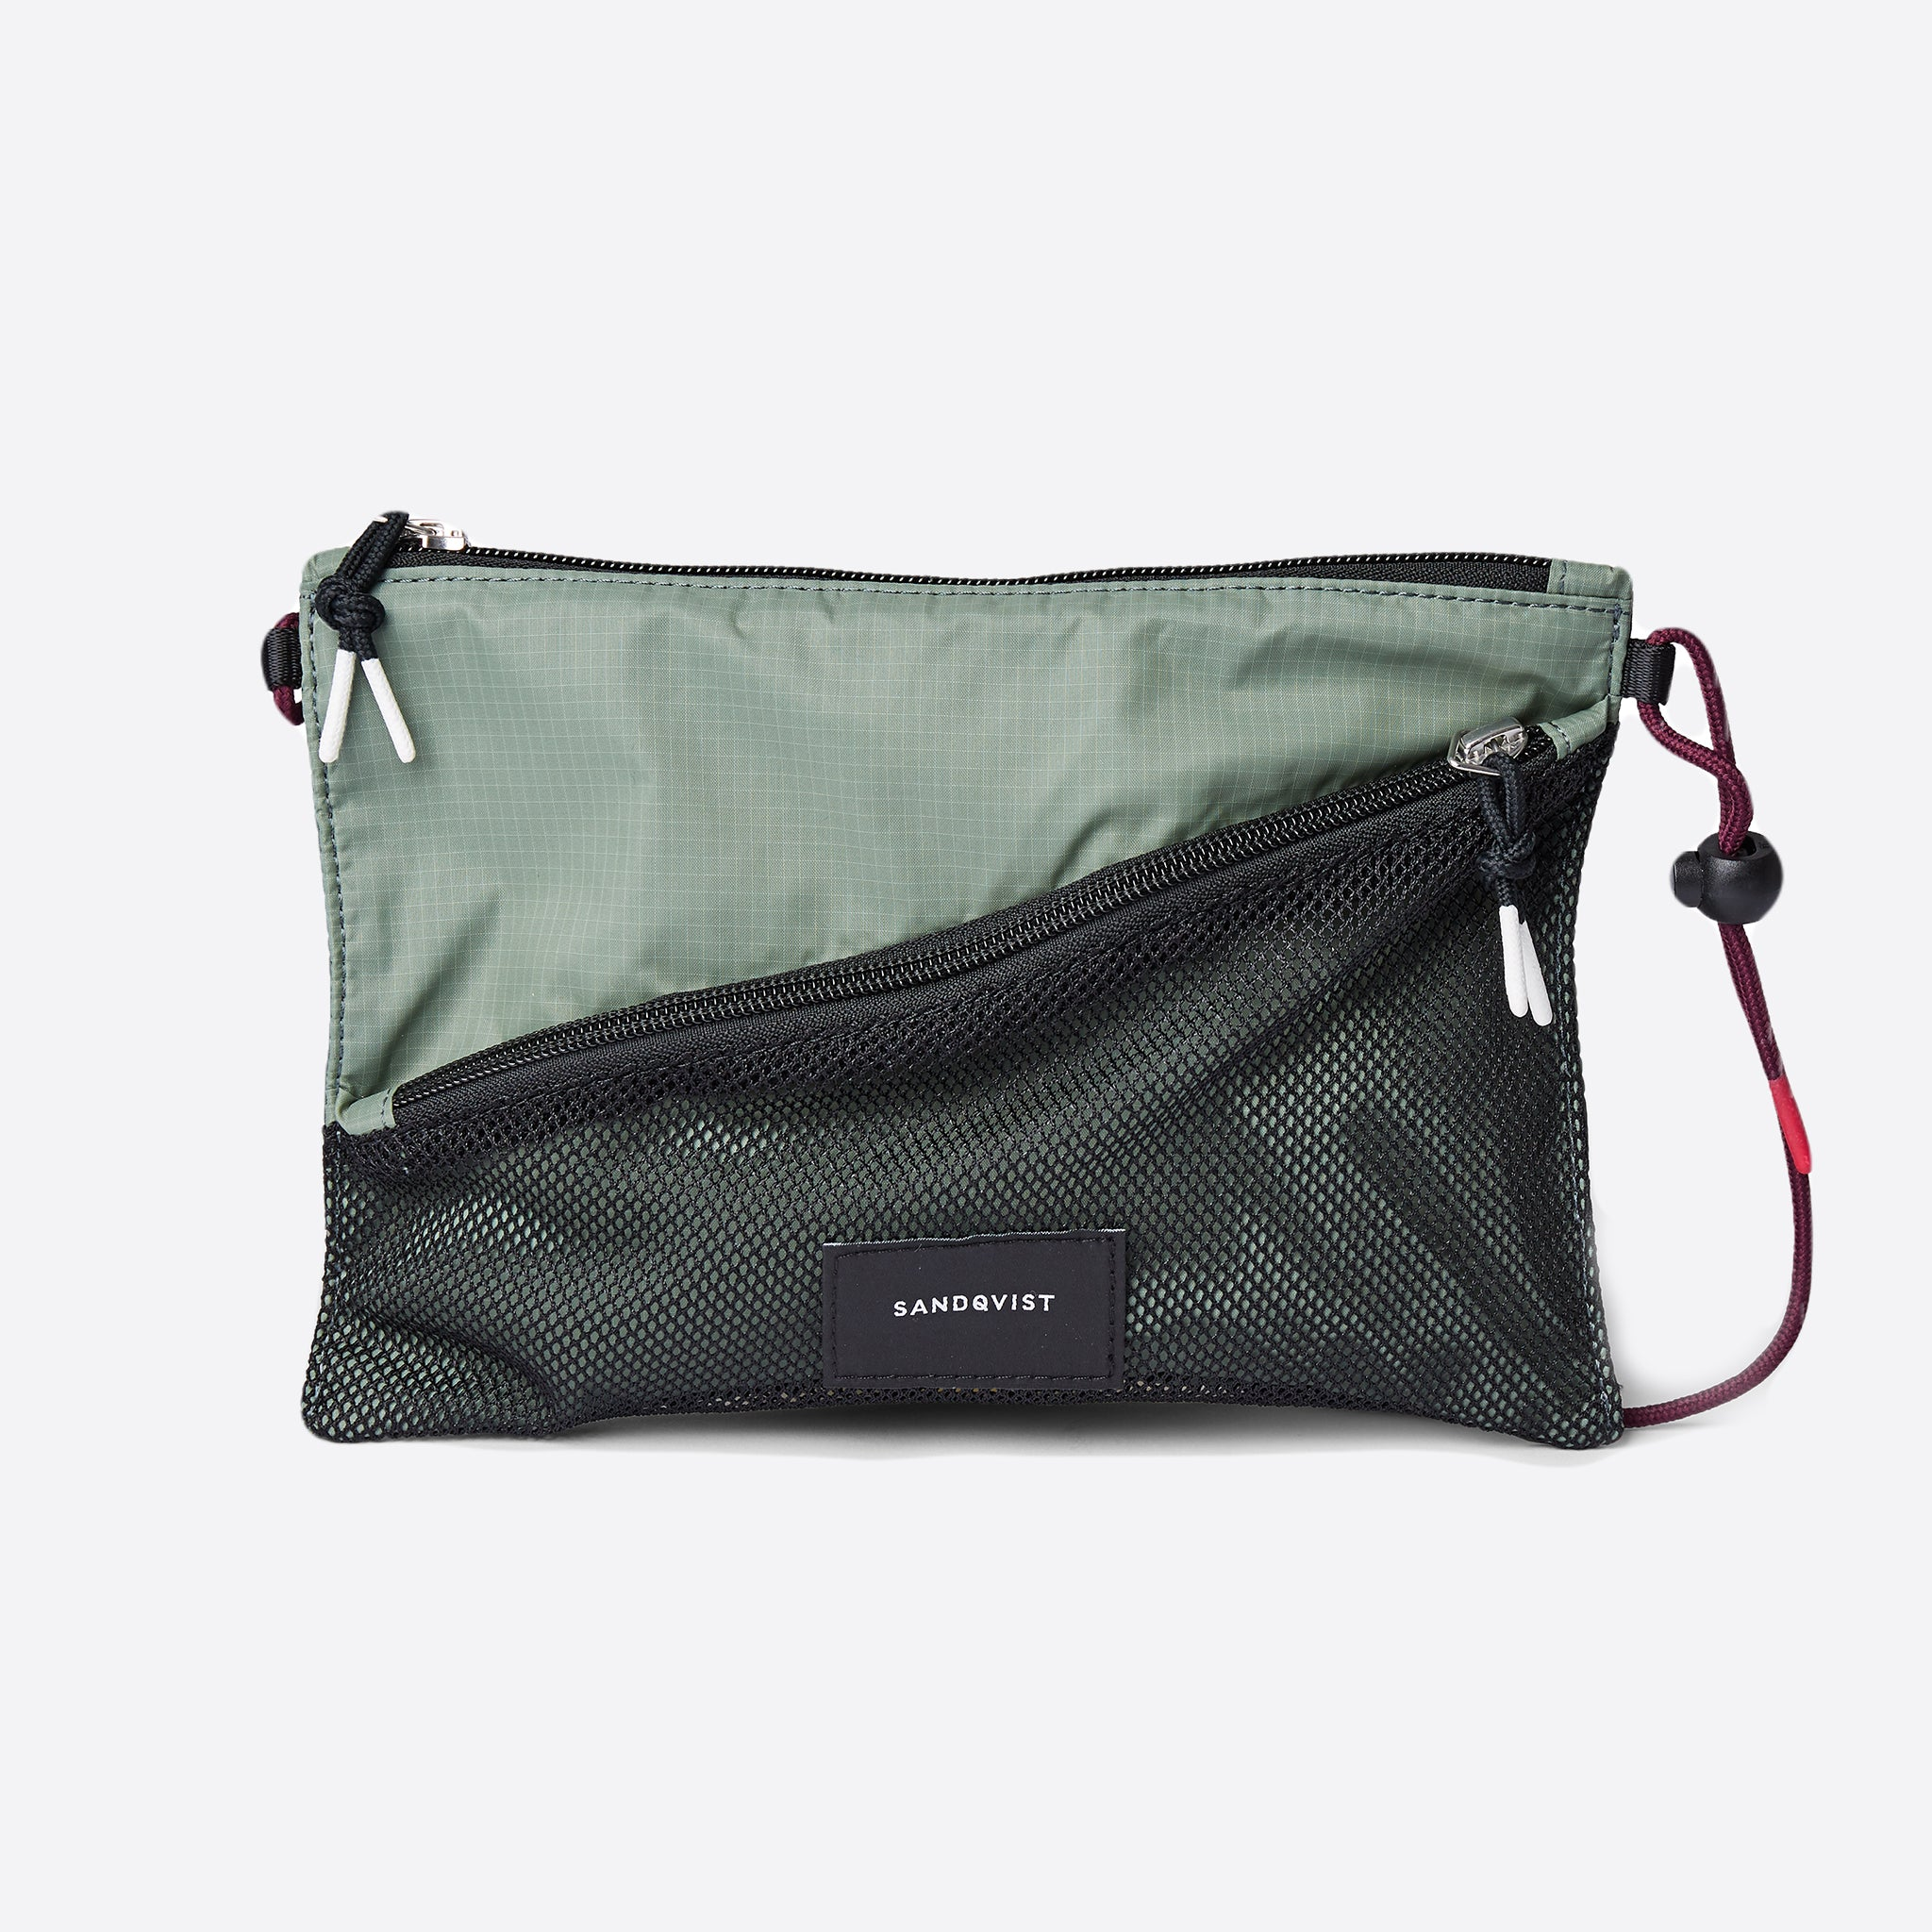 Sandqvist Dan Lightweight Shoulder Bag in Multi Green